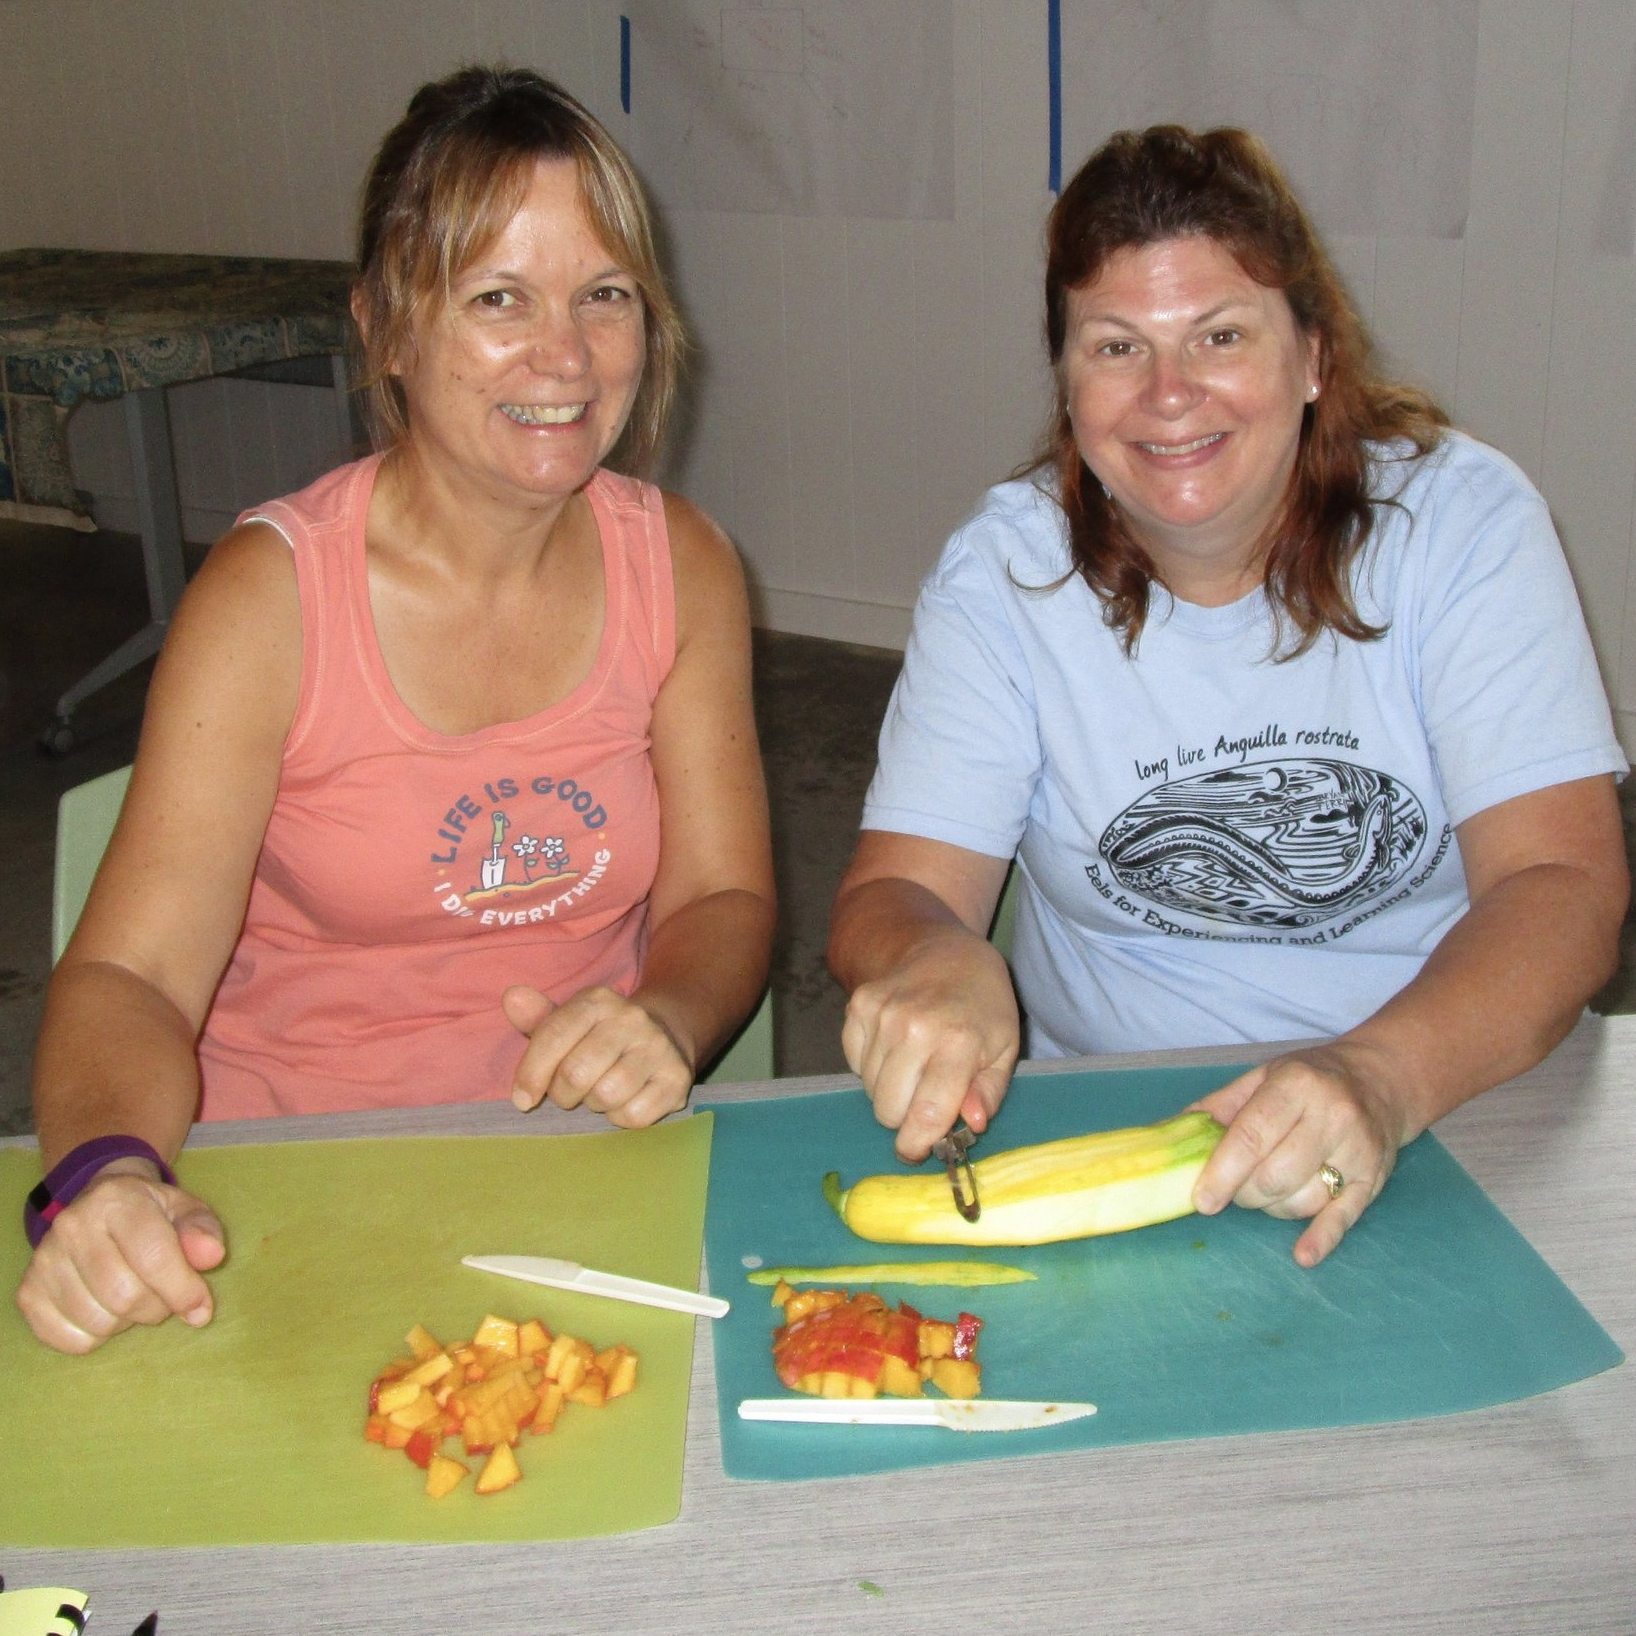 Suzi (left) and Mary make squash ribbons to add to the kale salad.